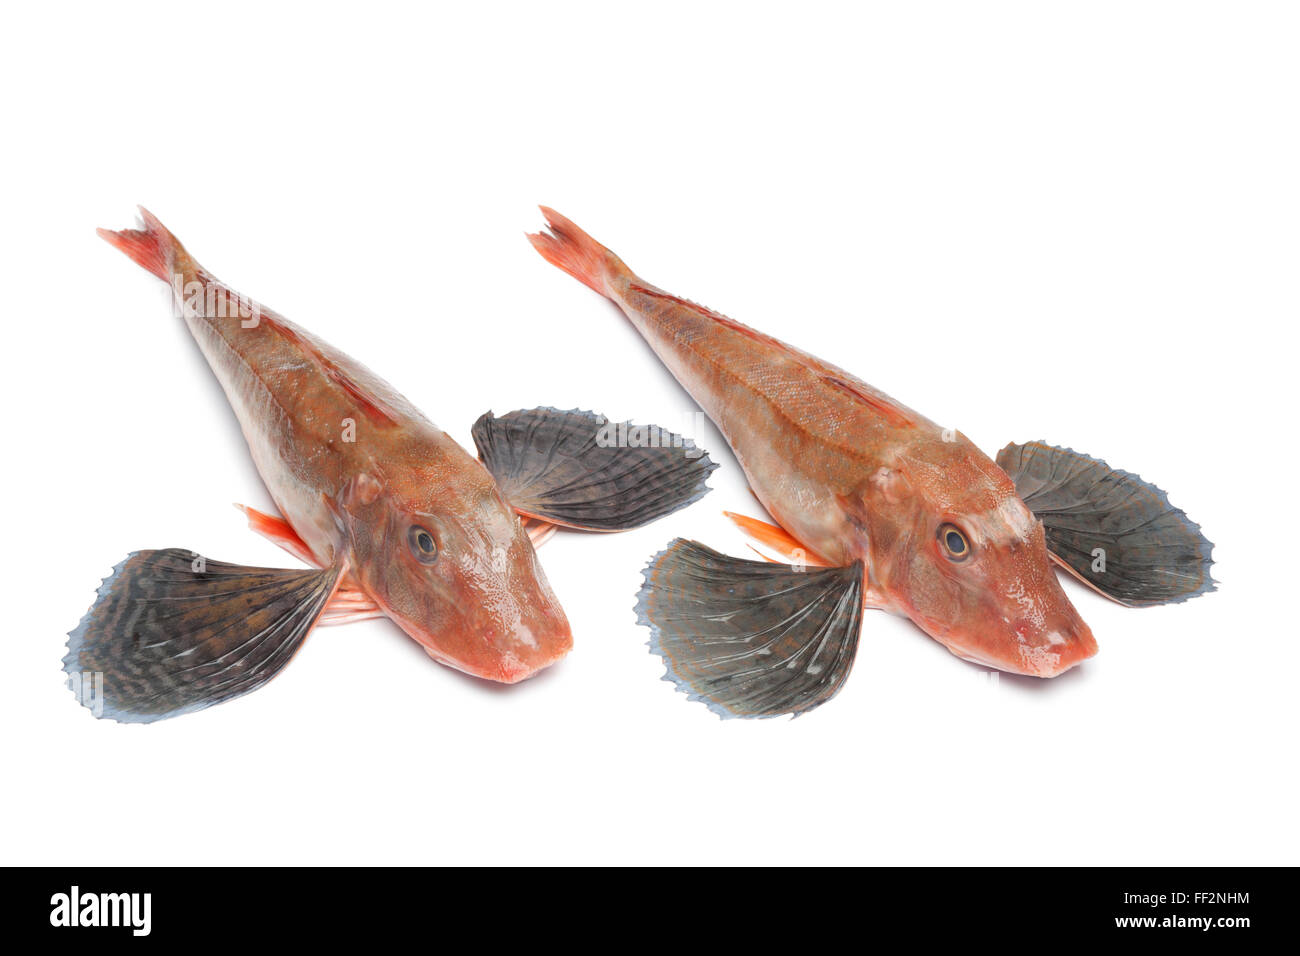 Fresh raw Red tub gurnard fishes with spread fins on white background - Stock Image